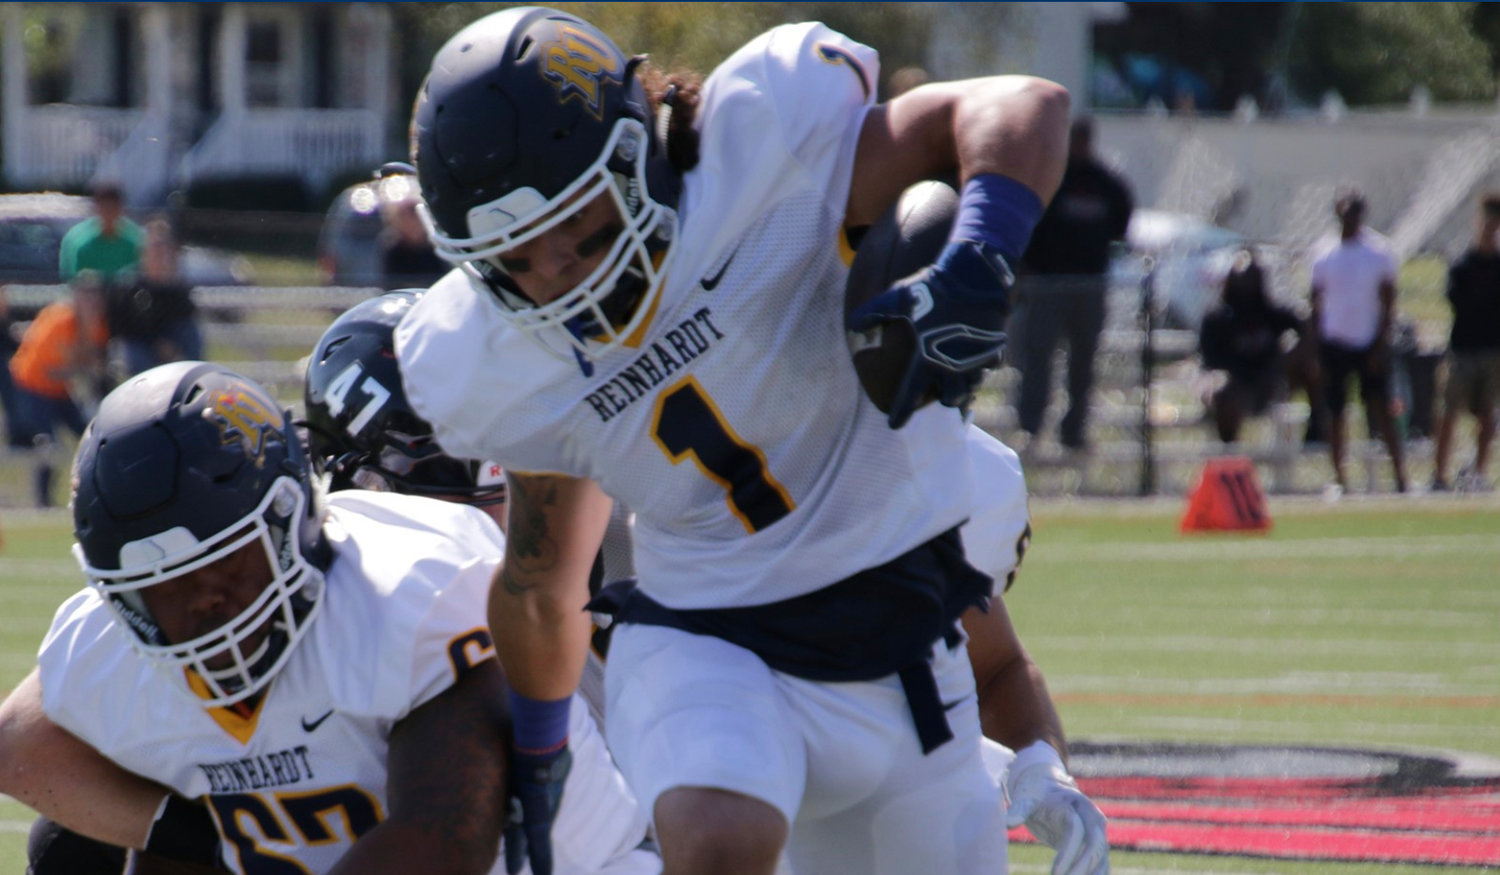 Former Adairsville Tiger Bryce Burgess carries the ball during a game for Reinhardt. Burgess ran for 55 yards on seven carries with a touchdown in a game against Kentucky Christian Saturday.